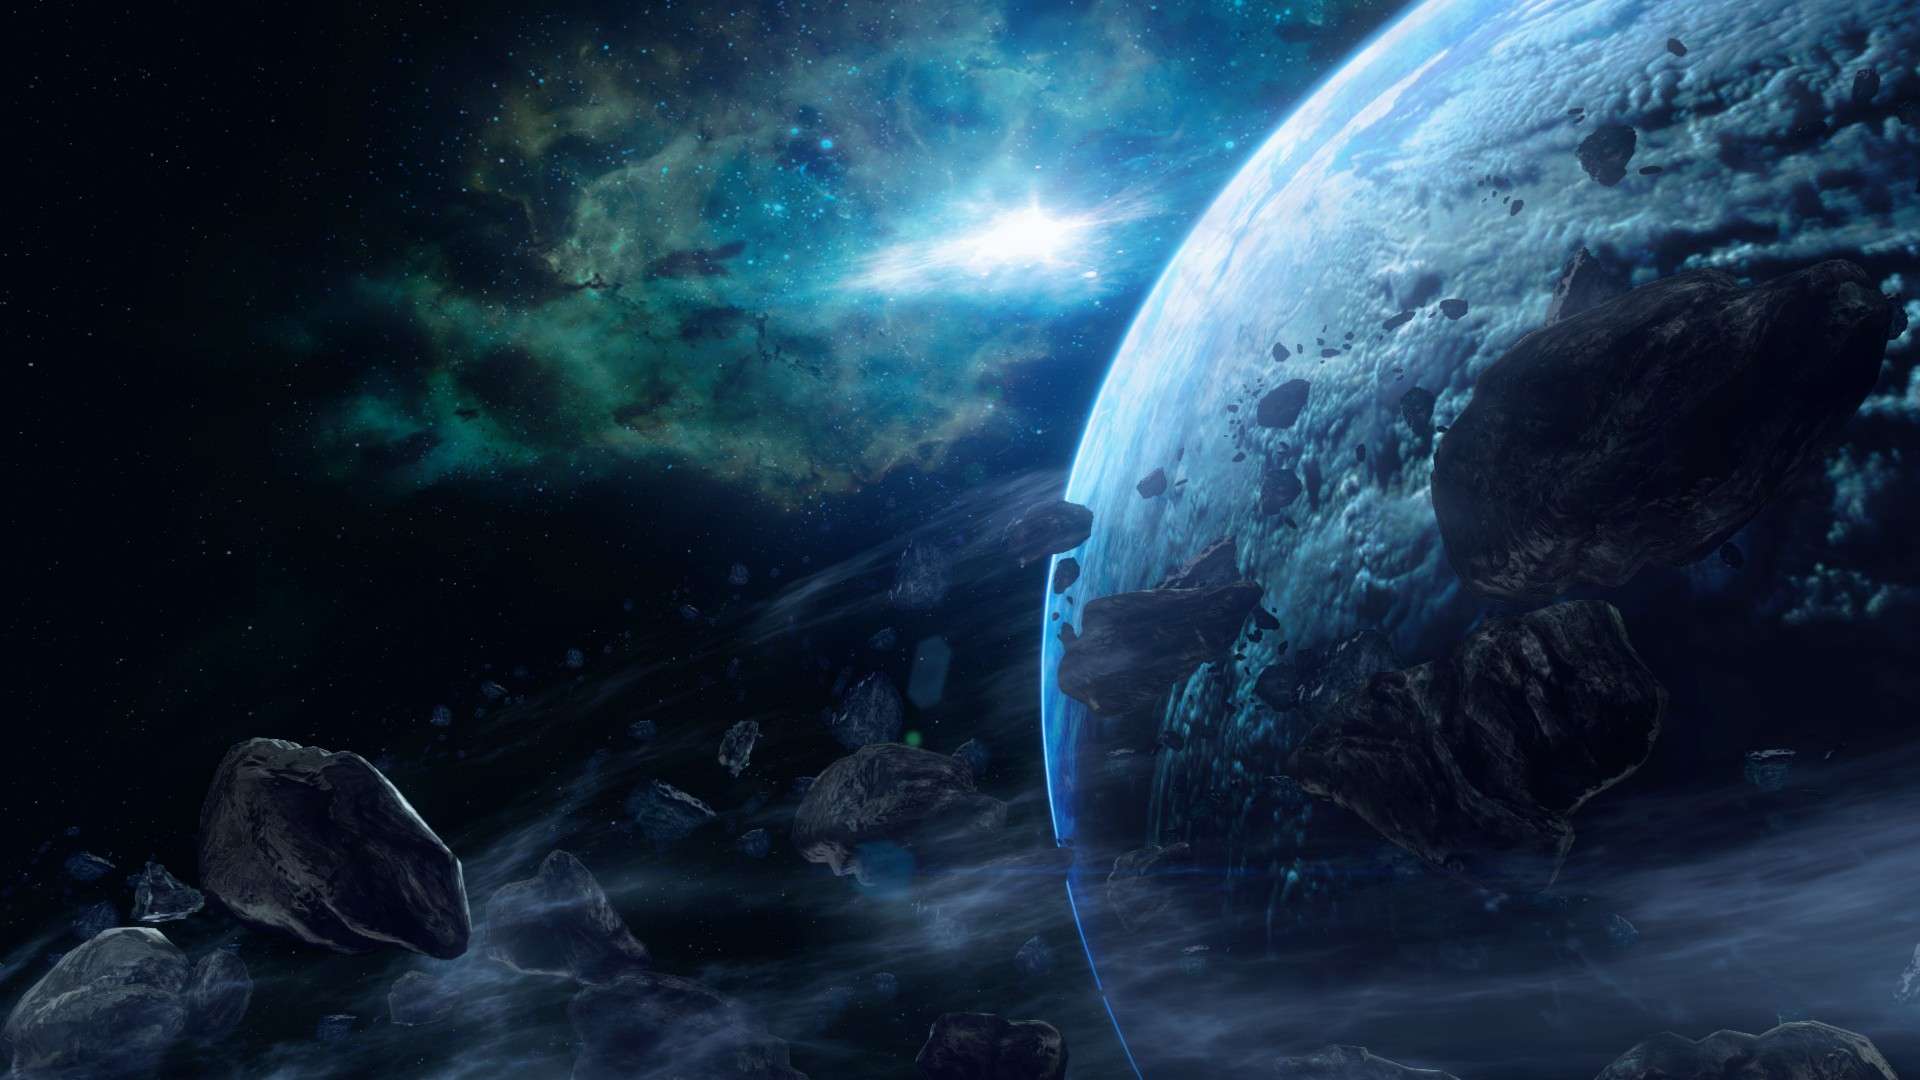 53+ Halo wallpapers ·① Download free cool backgrounds for desktop and mobile devices in any ...